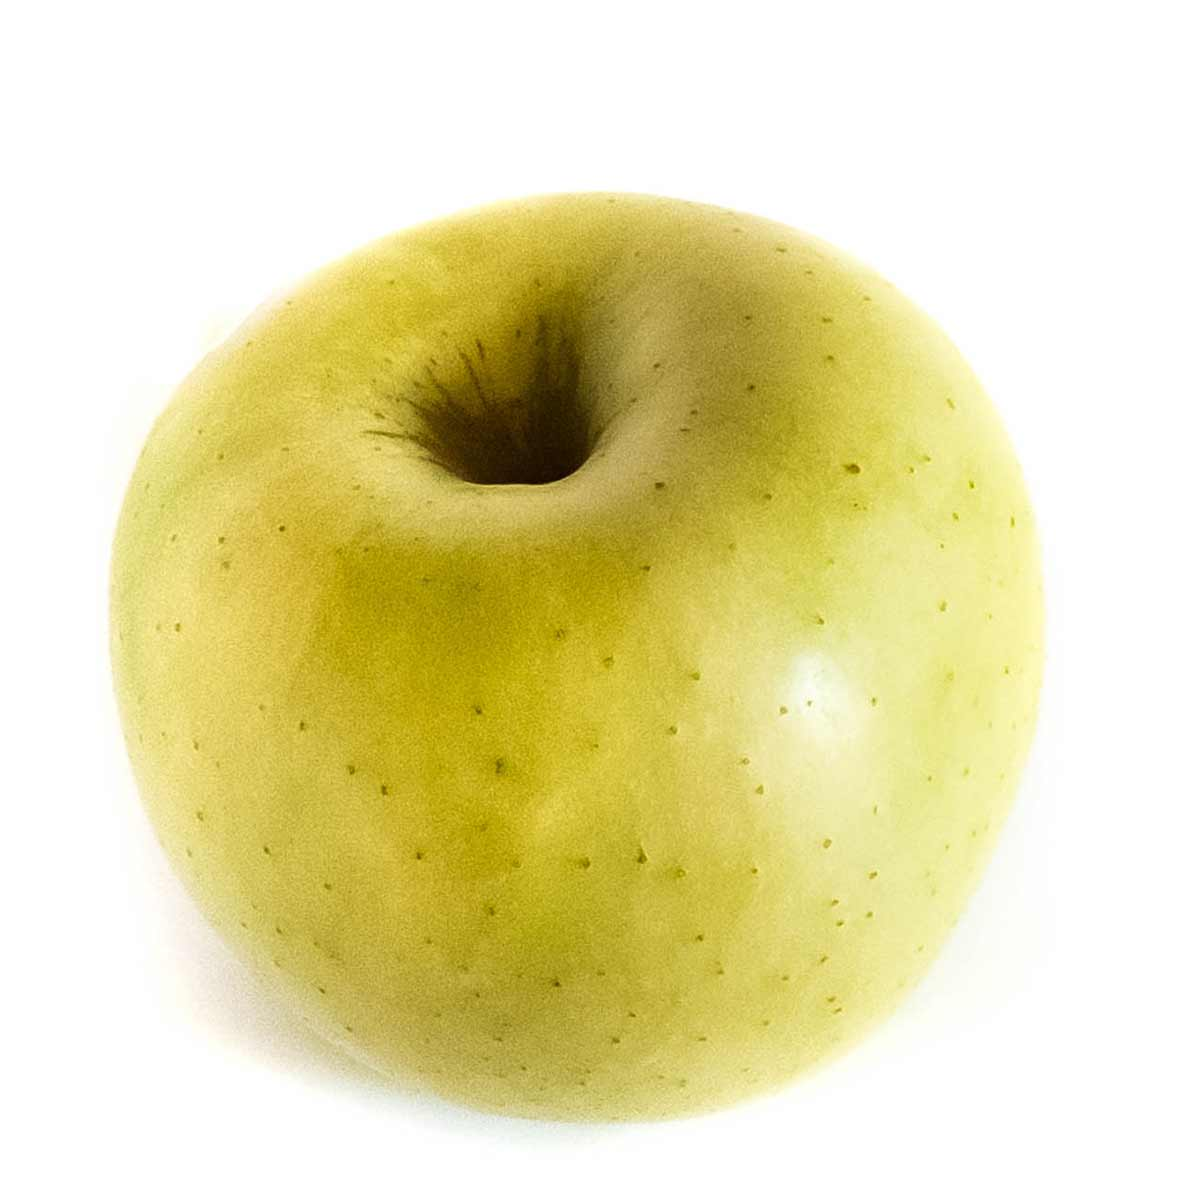 Types of apples: Golden Delicious